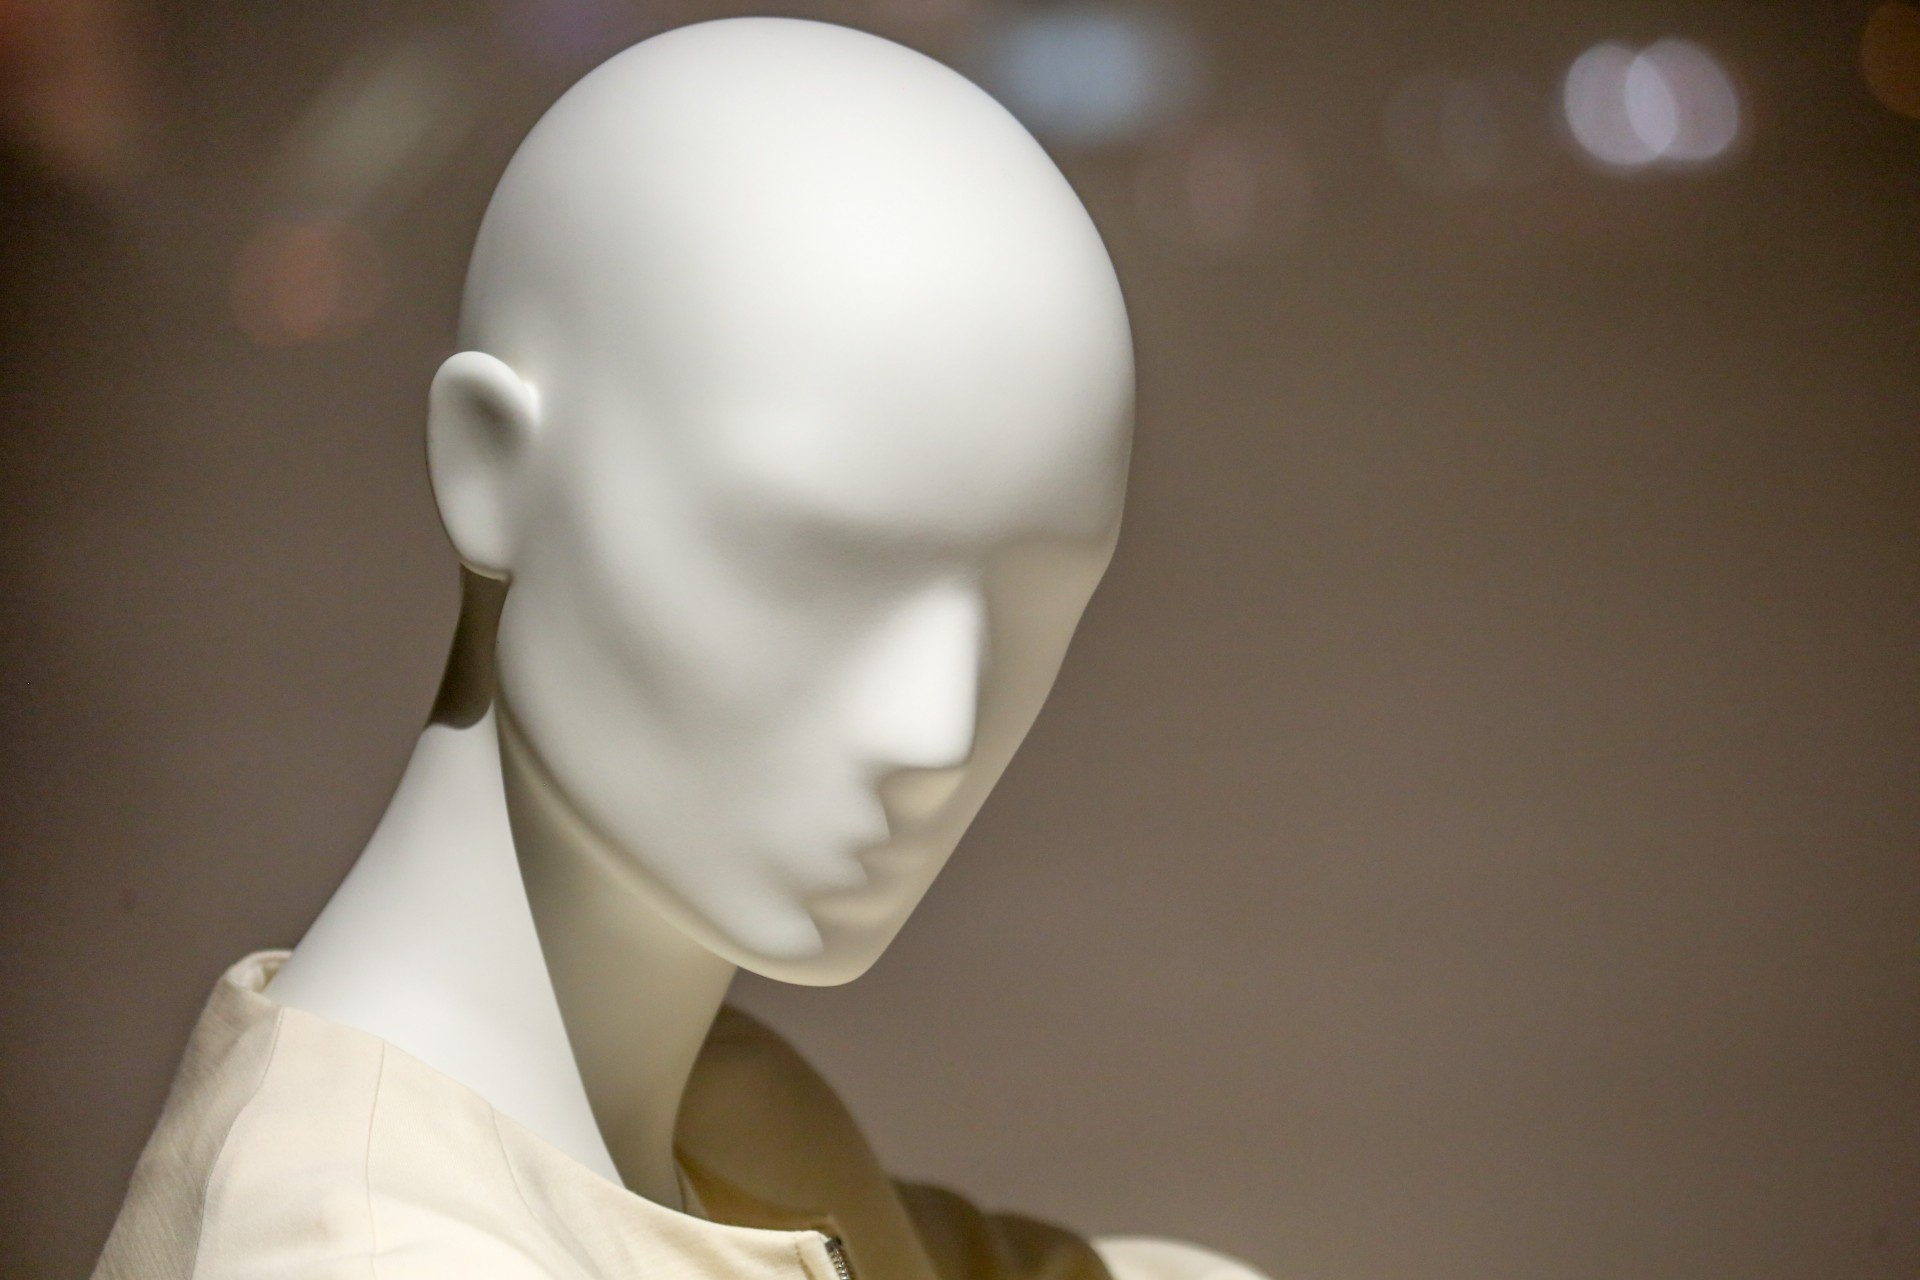 'Thicc' Mannequins Are Our Future